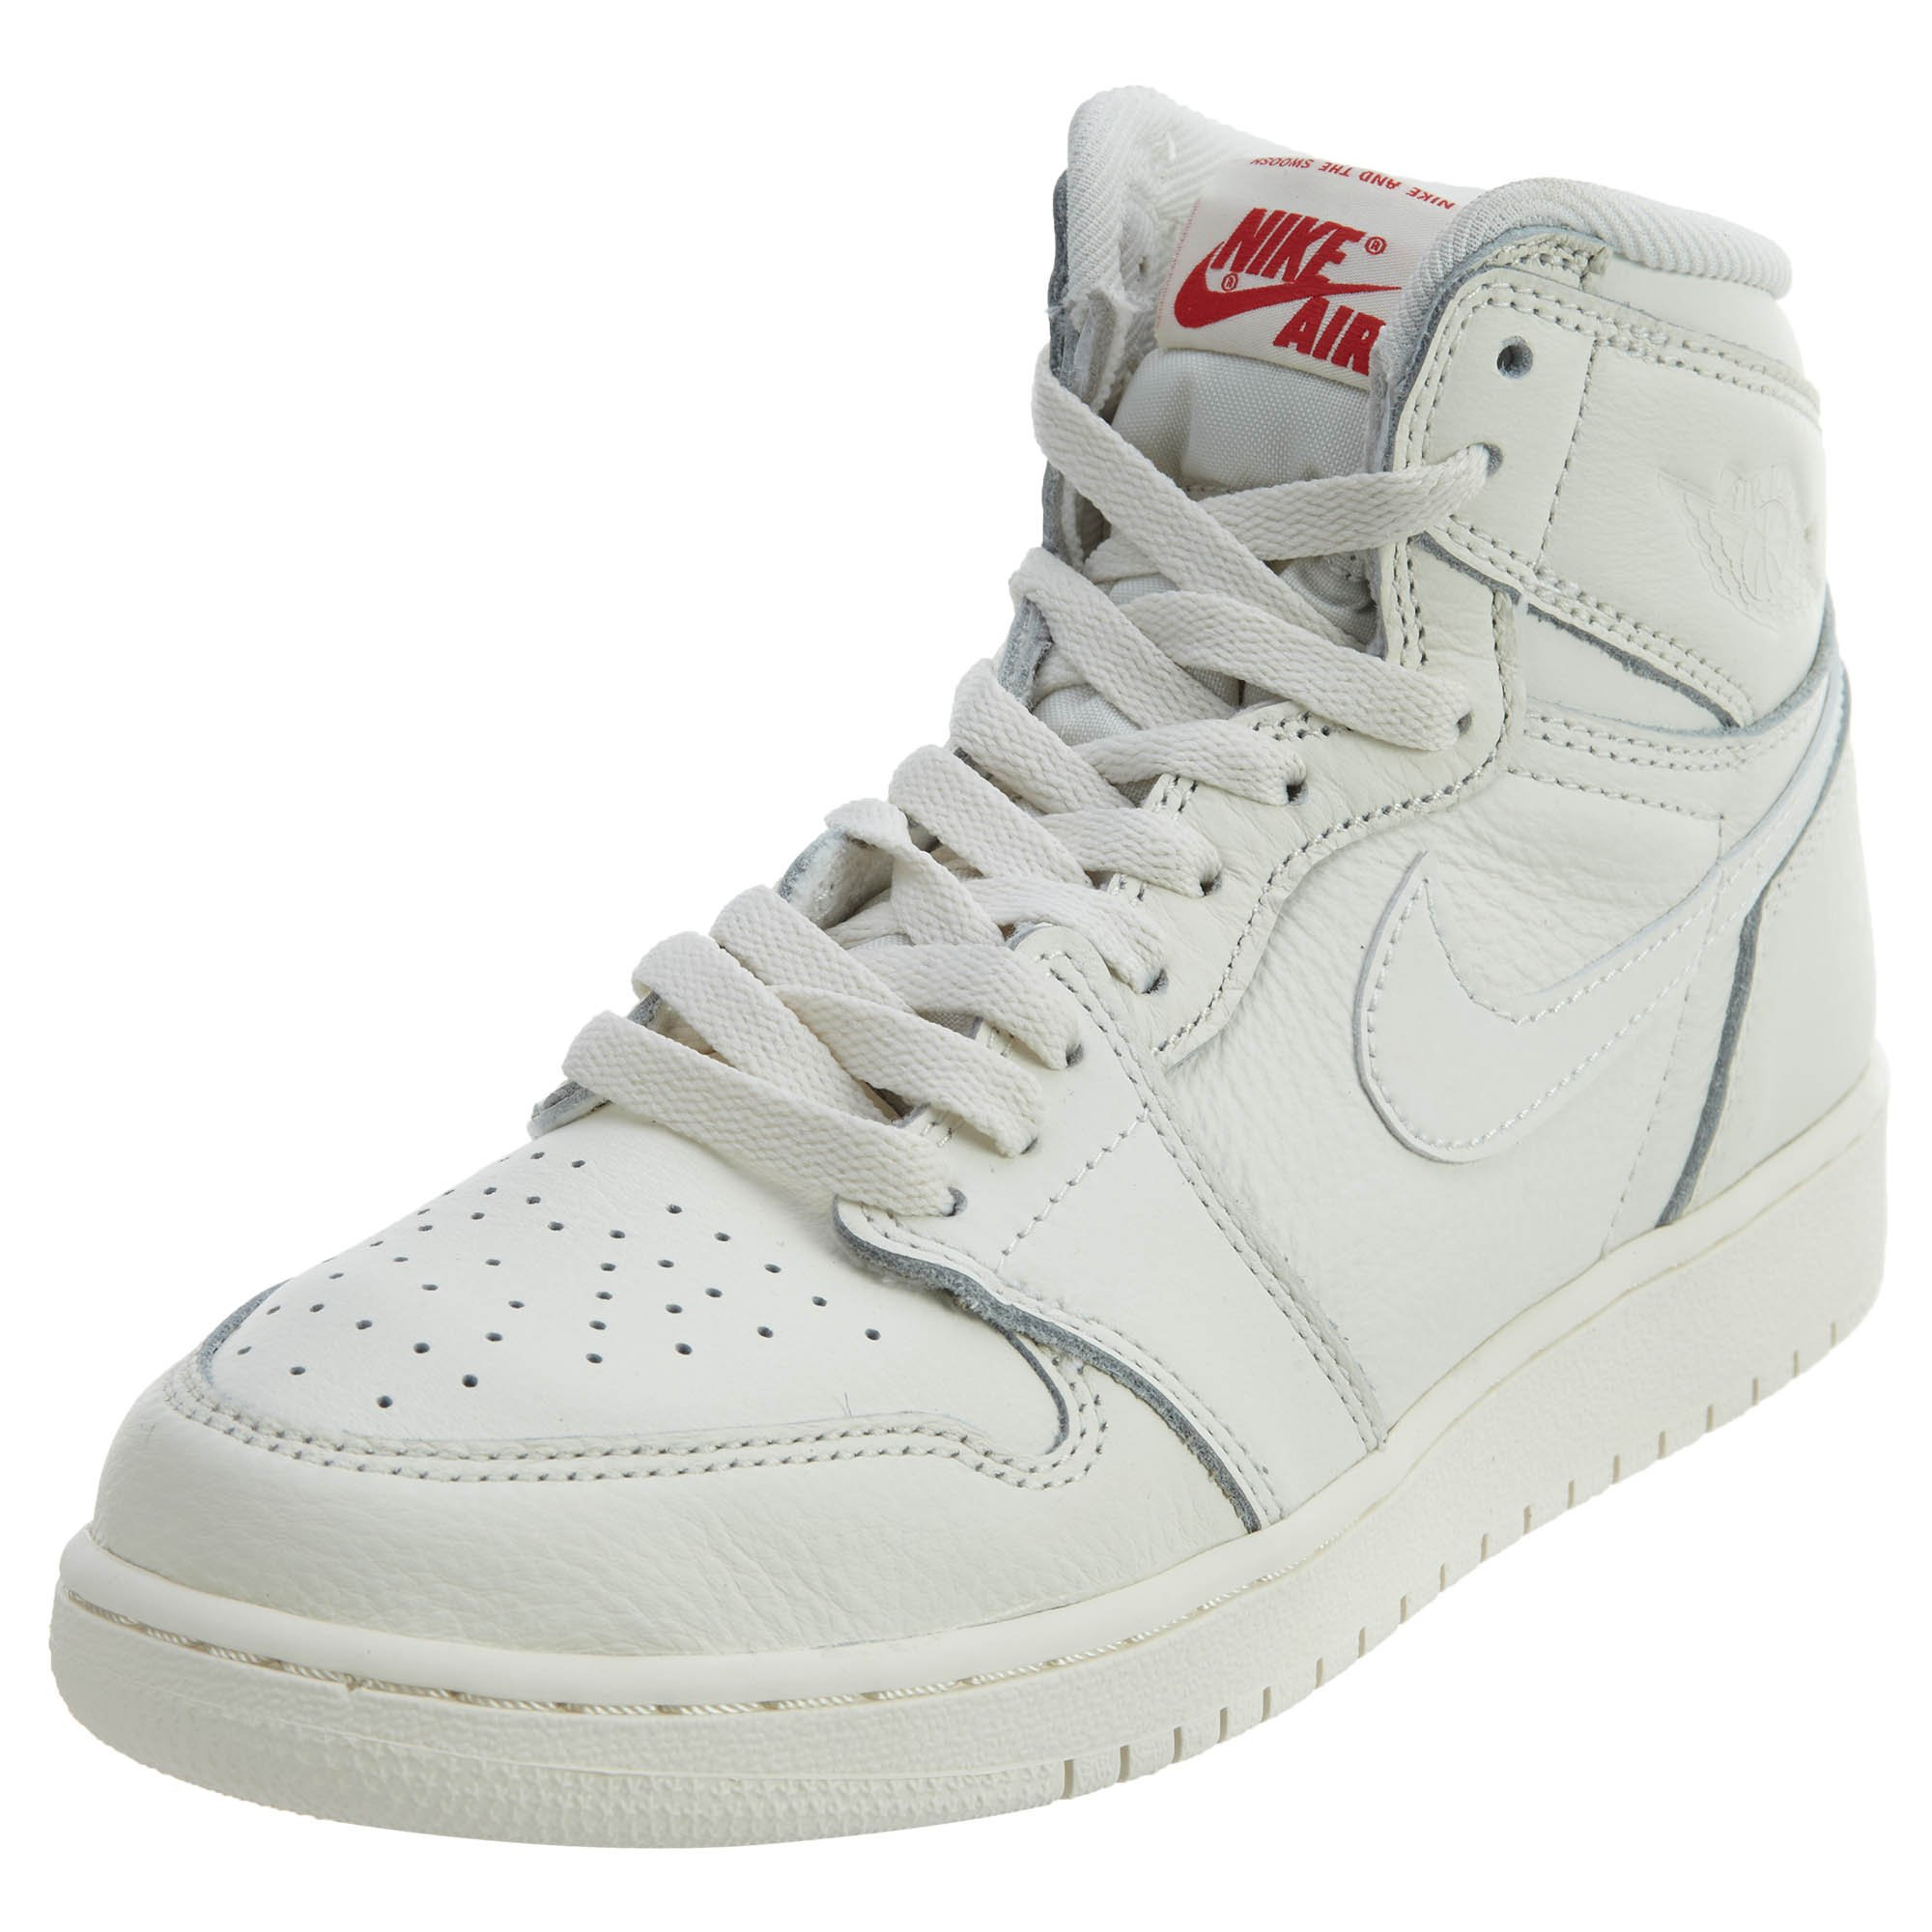 Jordan Air 1 Retro OG (Kids) by Jordan